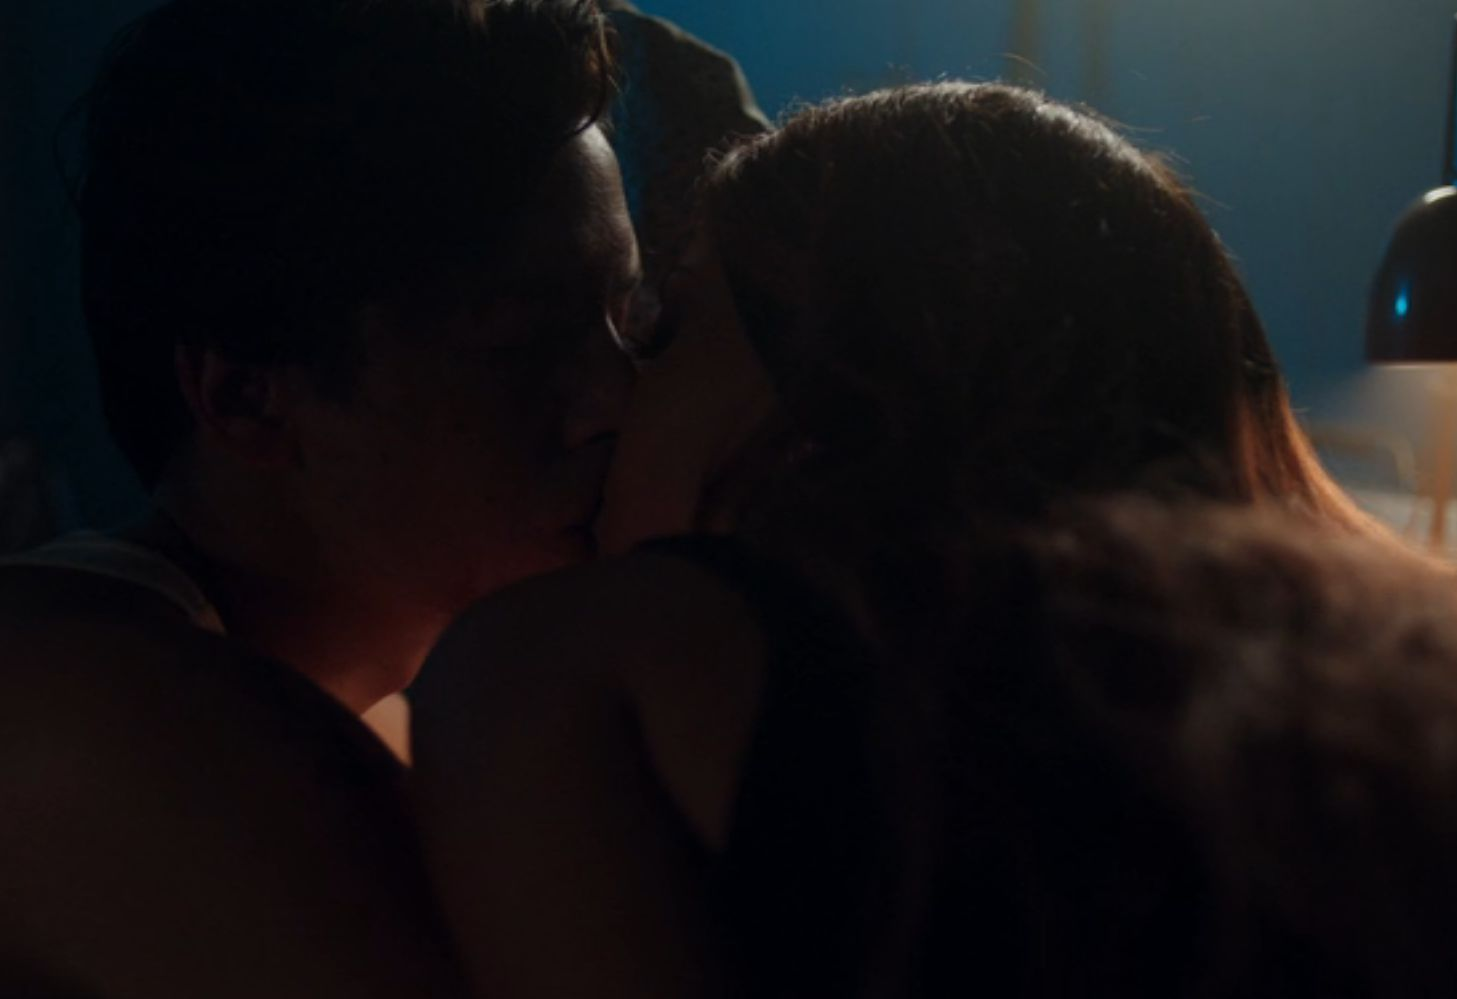 Toni and Jughead kissing (CW / Riverdale)